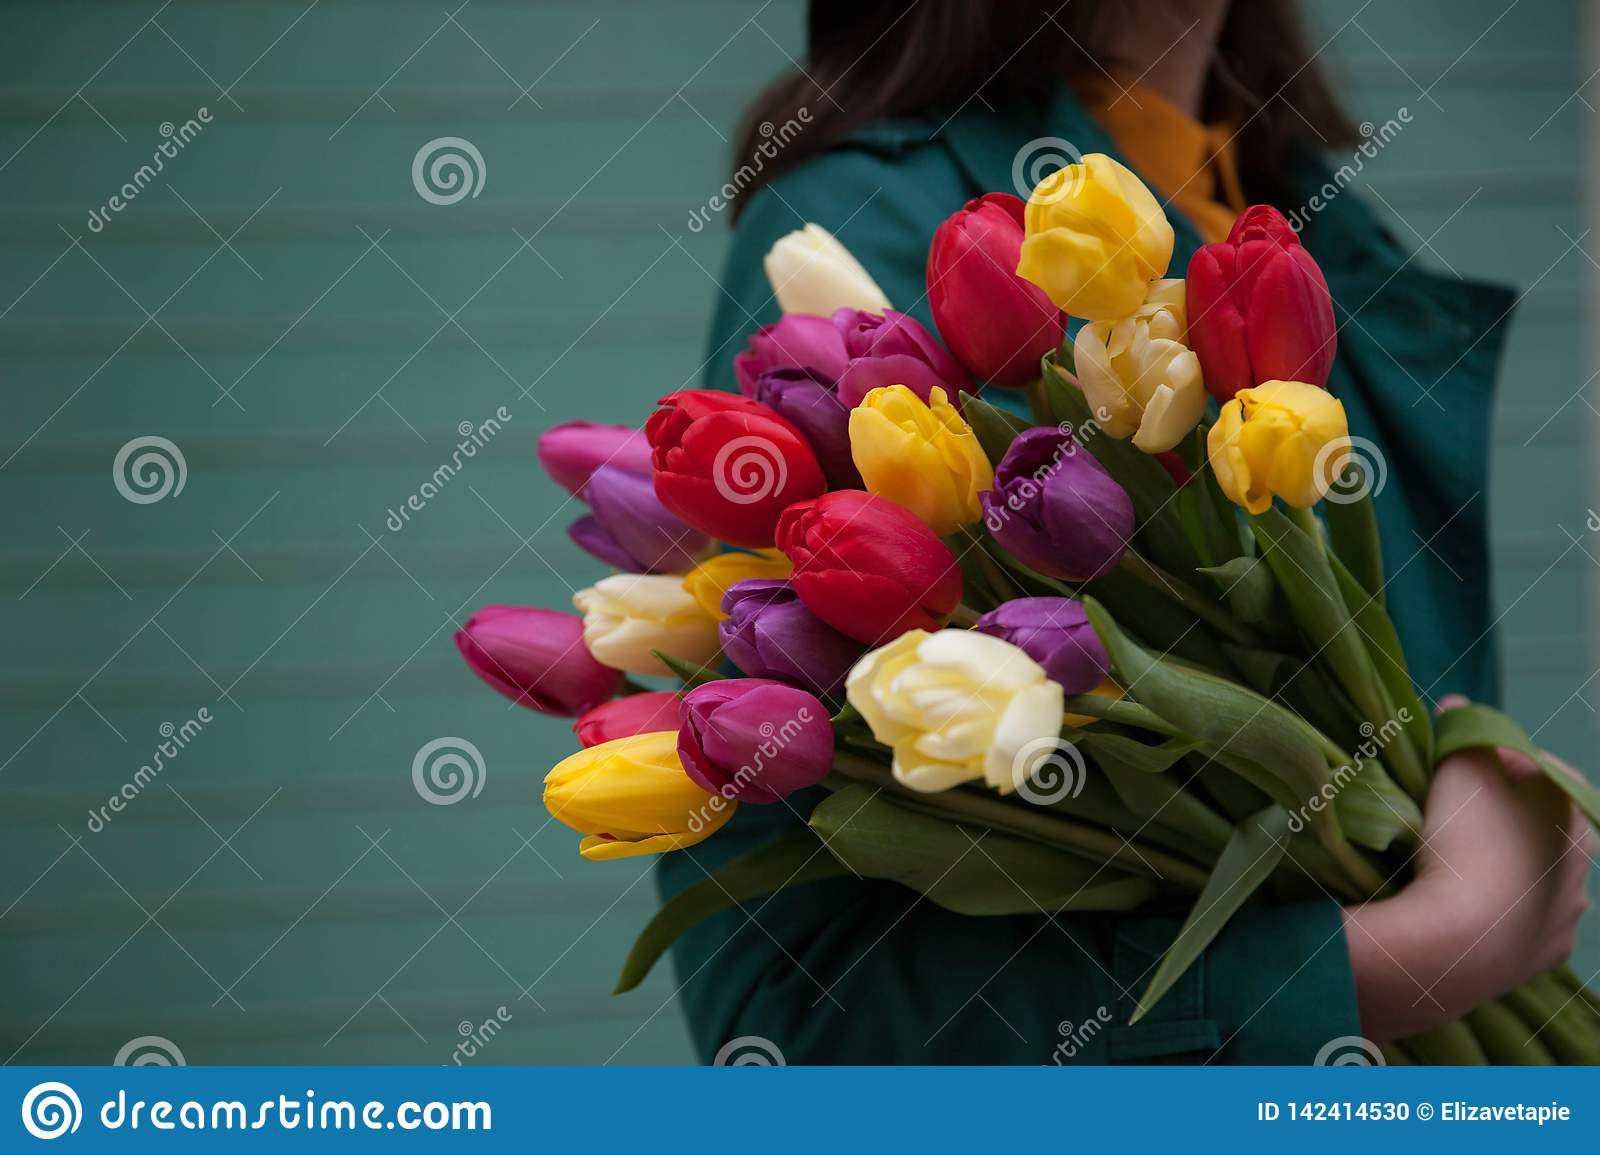 Female hands with a bouquet of flowers